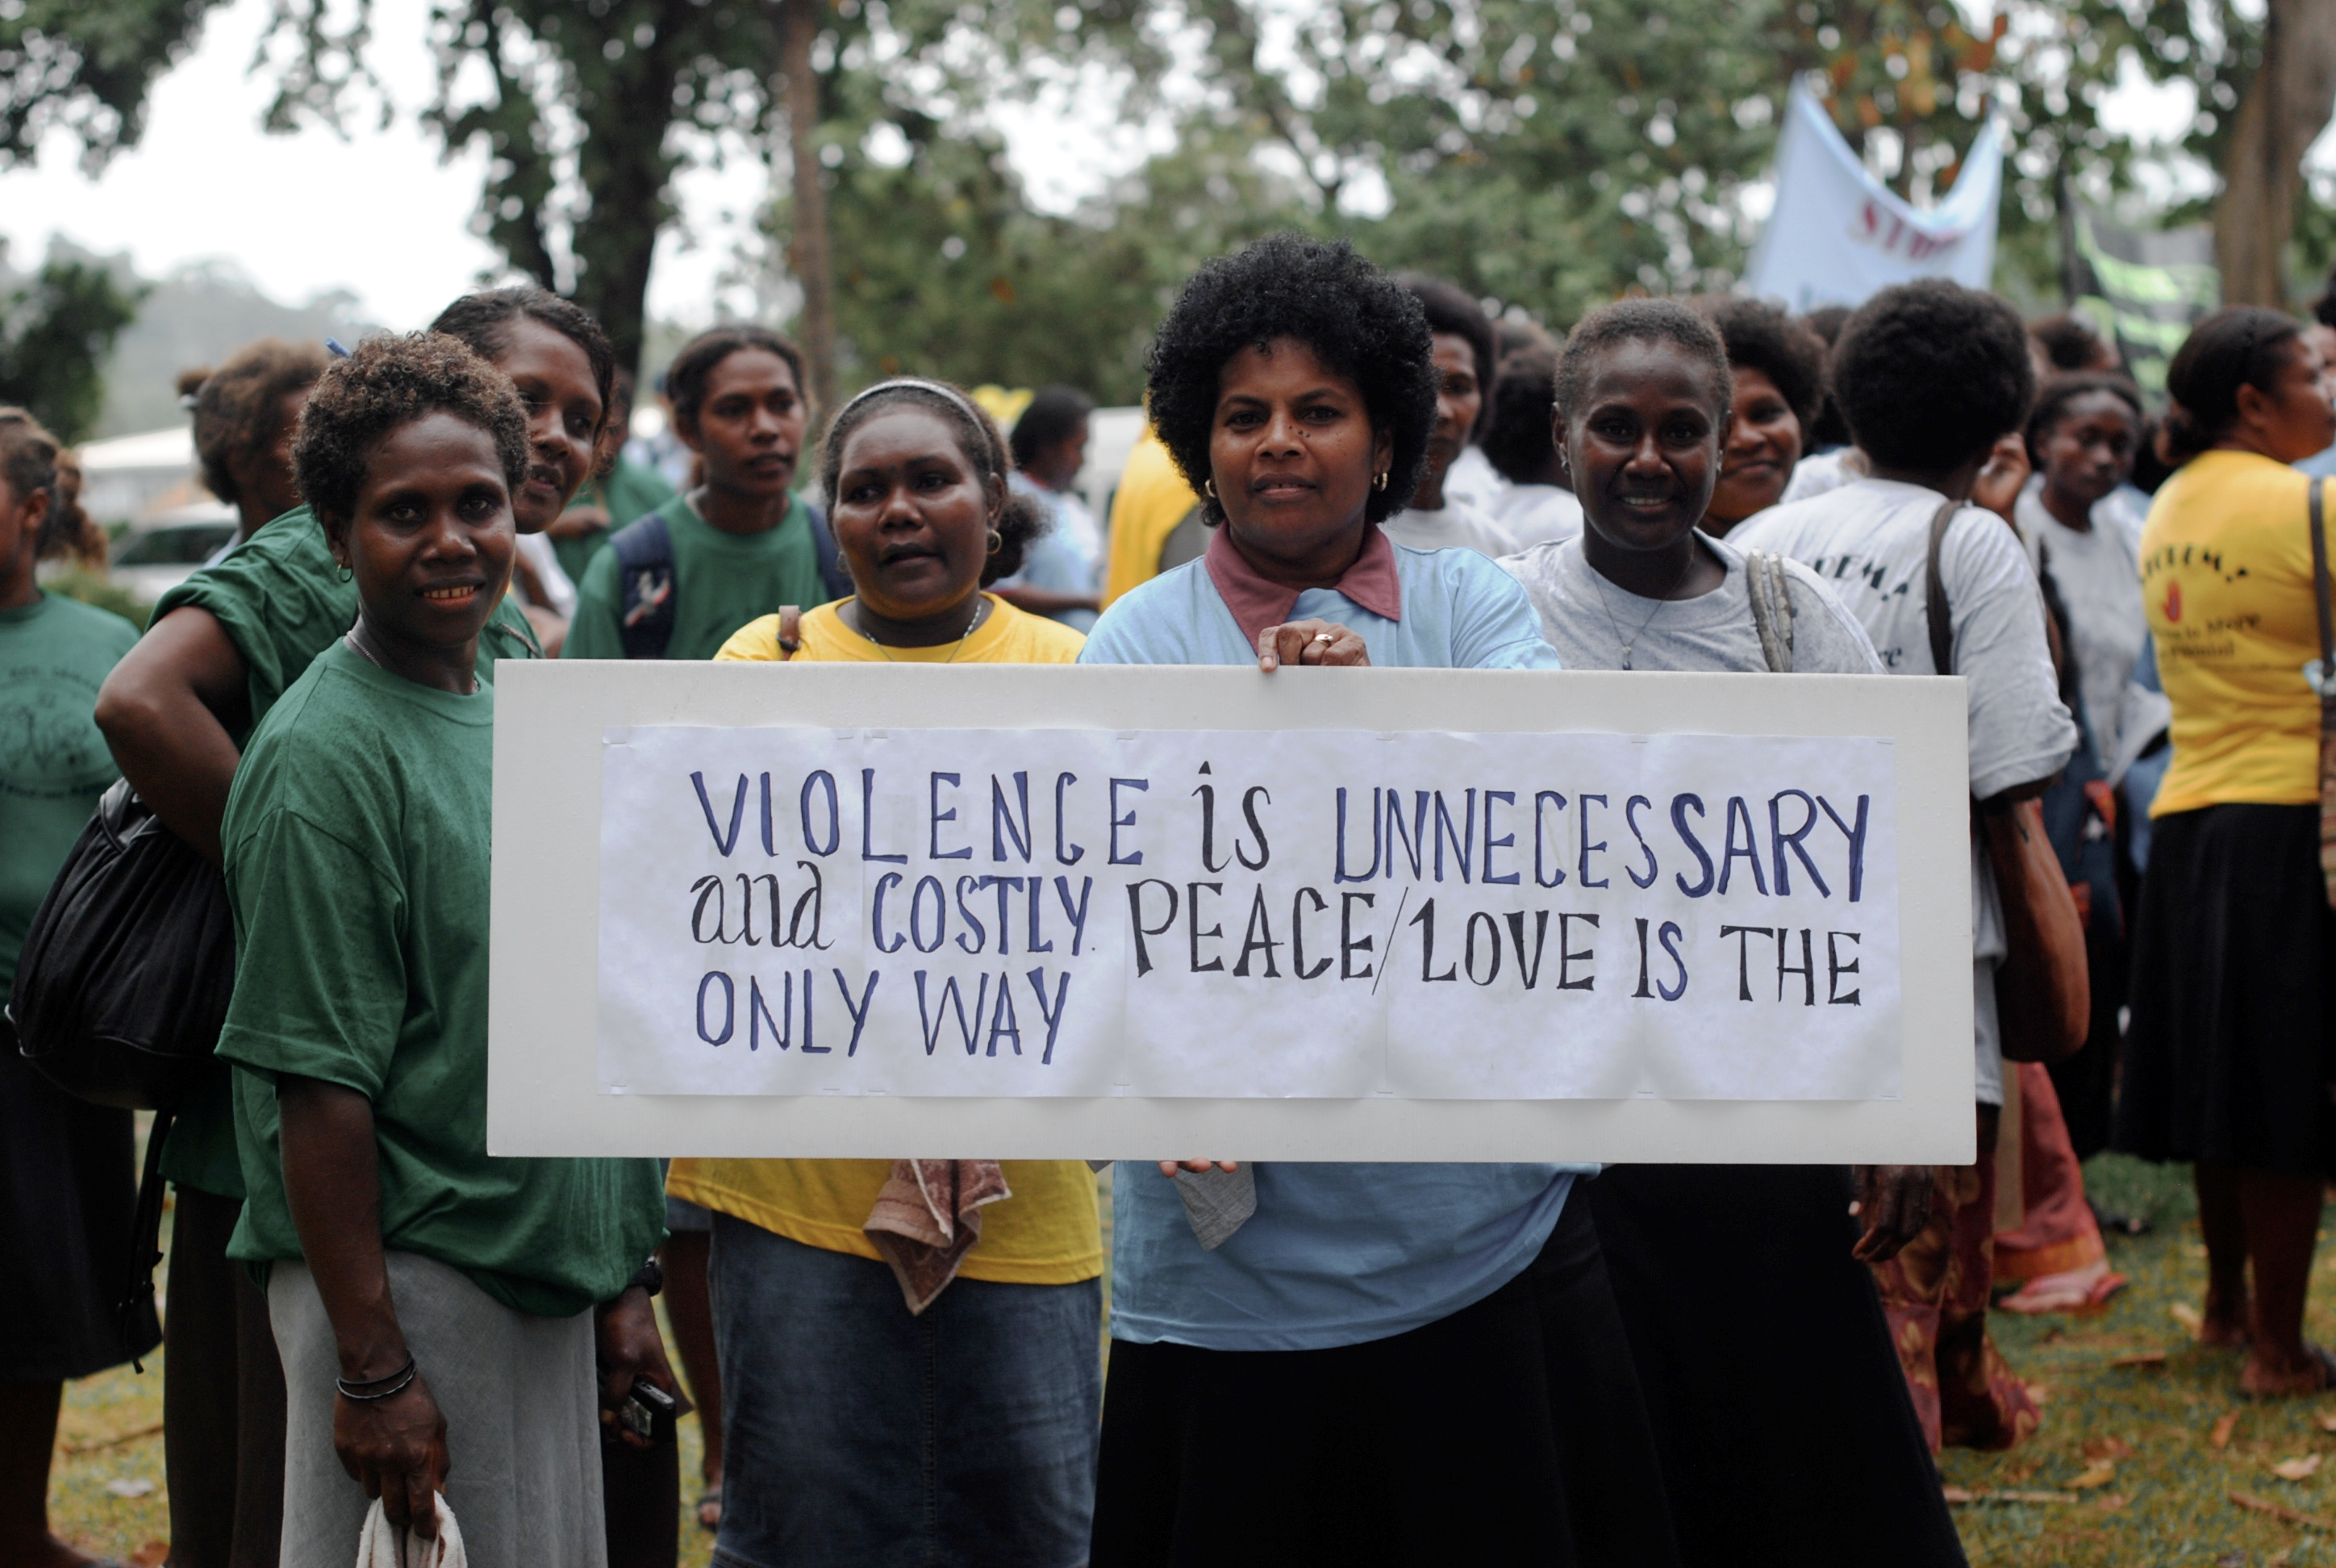 Solomon Island women gather for the annual White Ribbon Day march in Honiara to highlight domestic violence in the country. Photo by DFAT